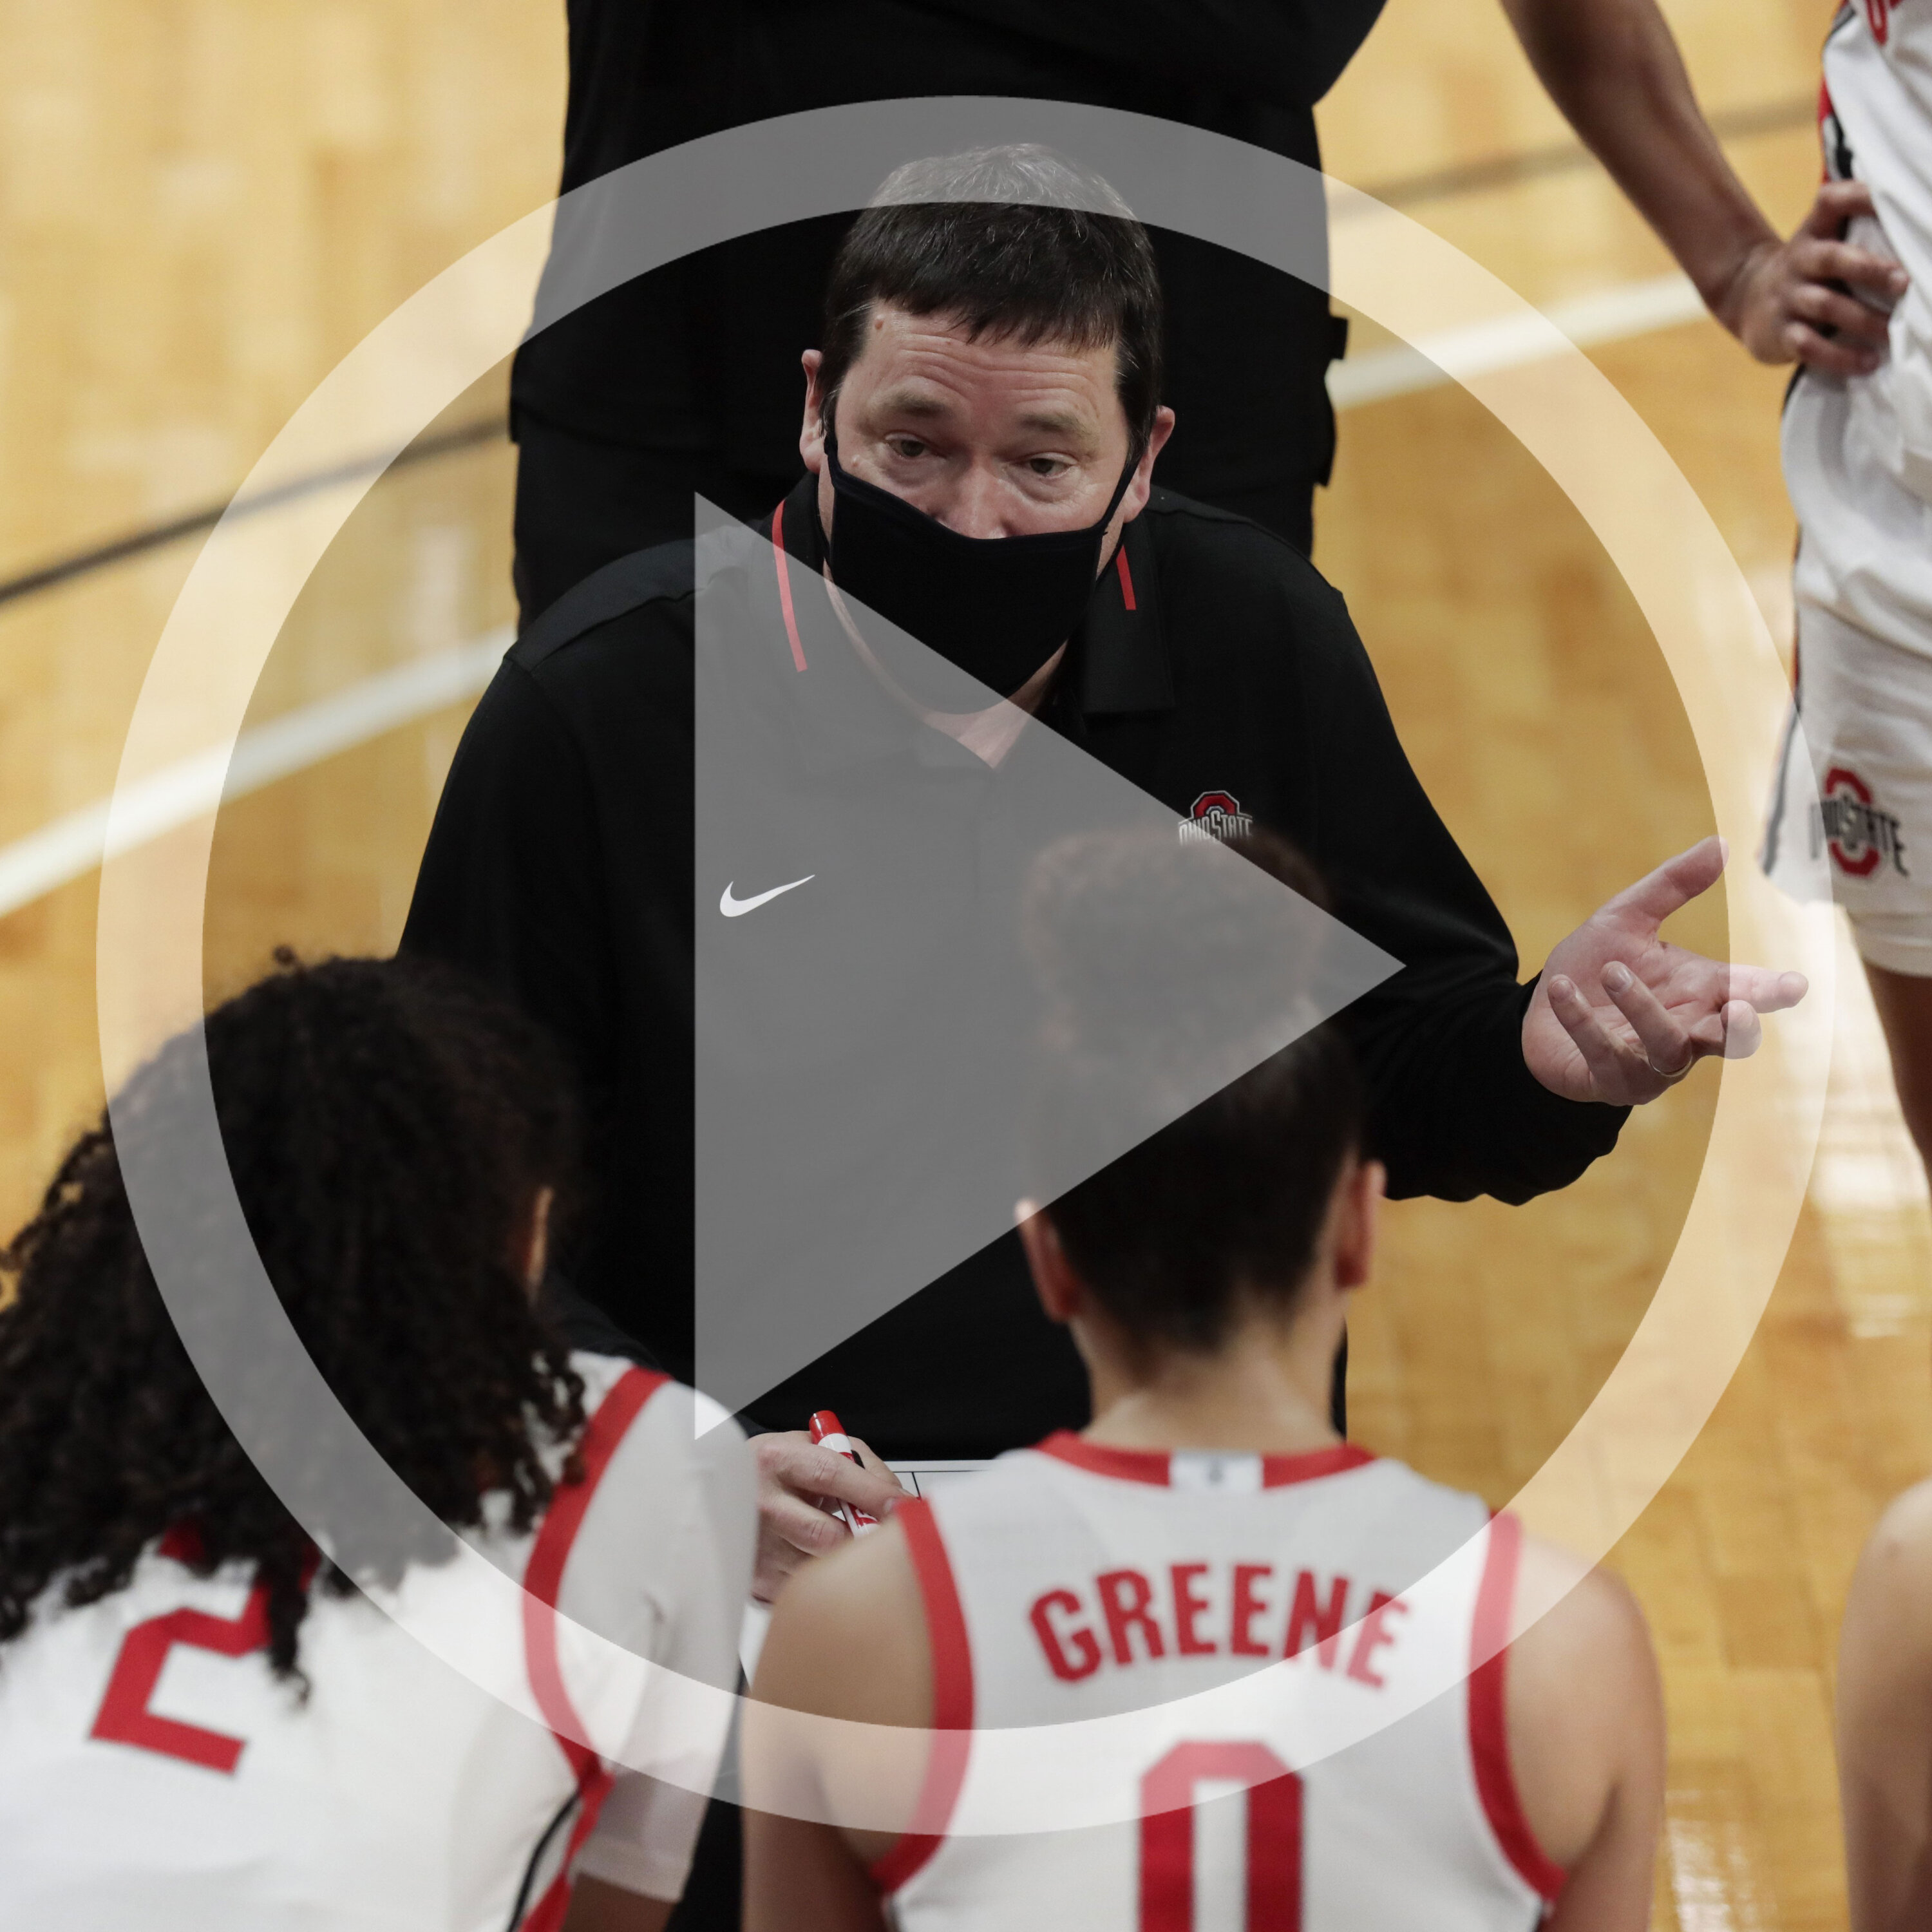 Oller Take II: Ohio State women good at underperforming